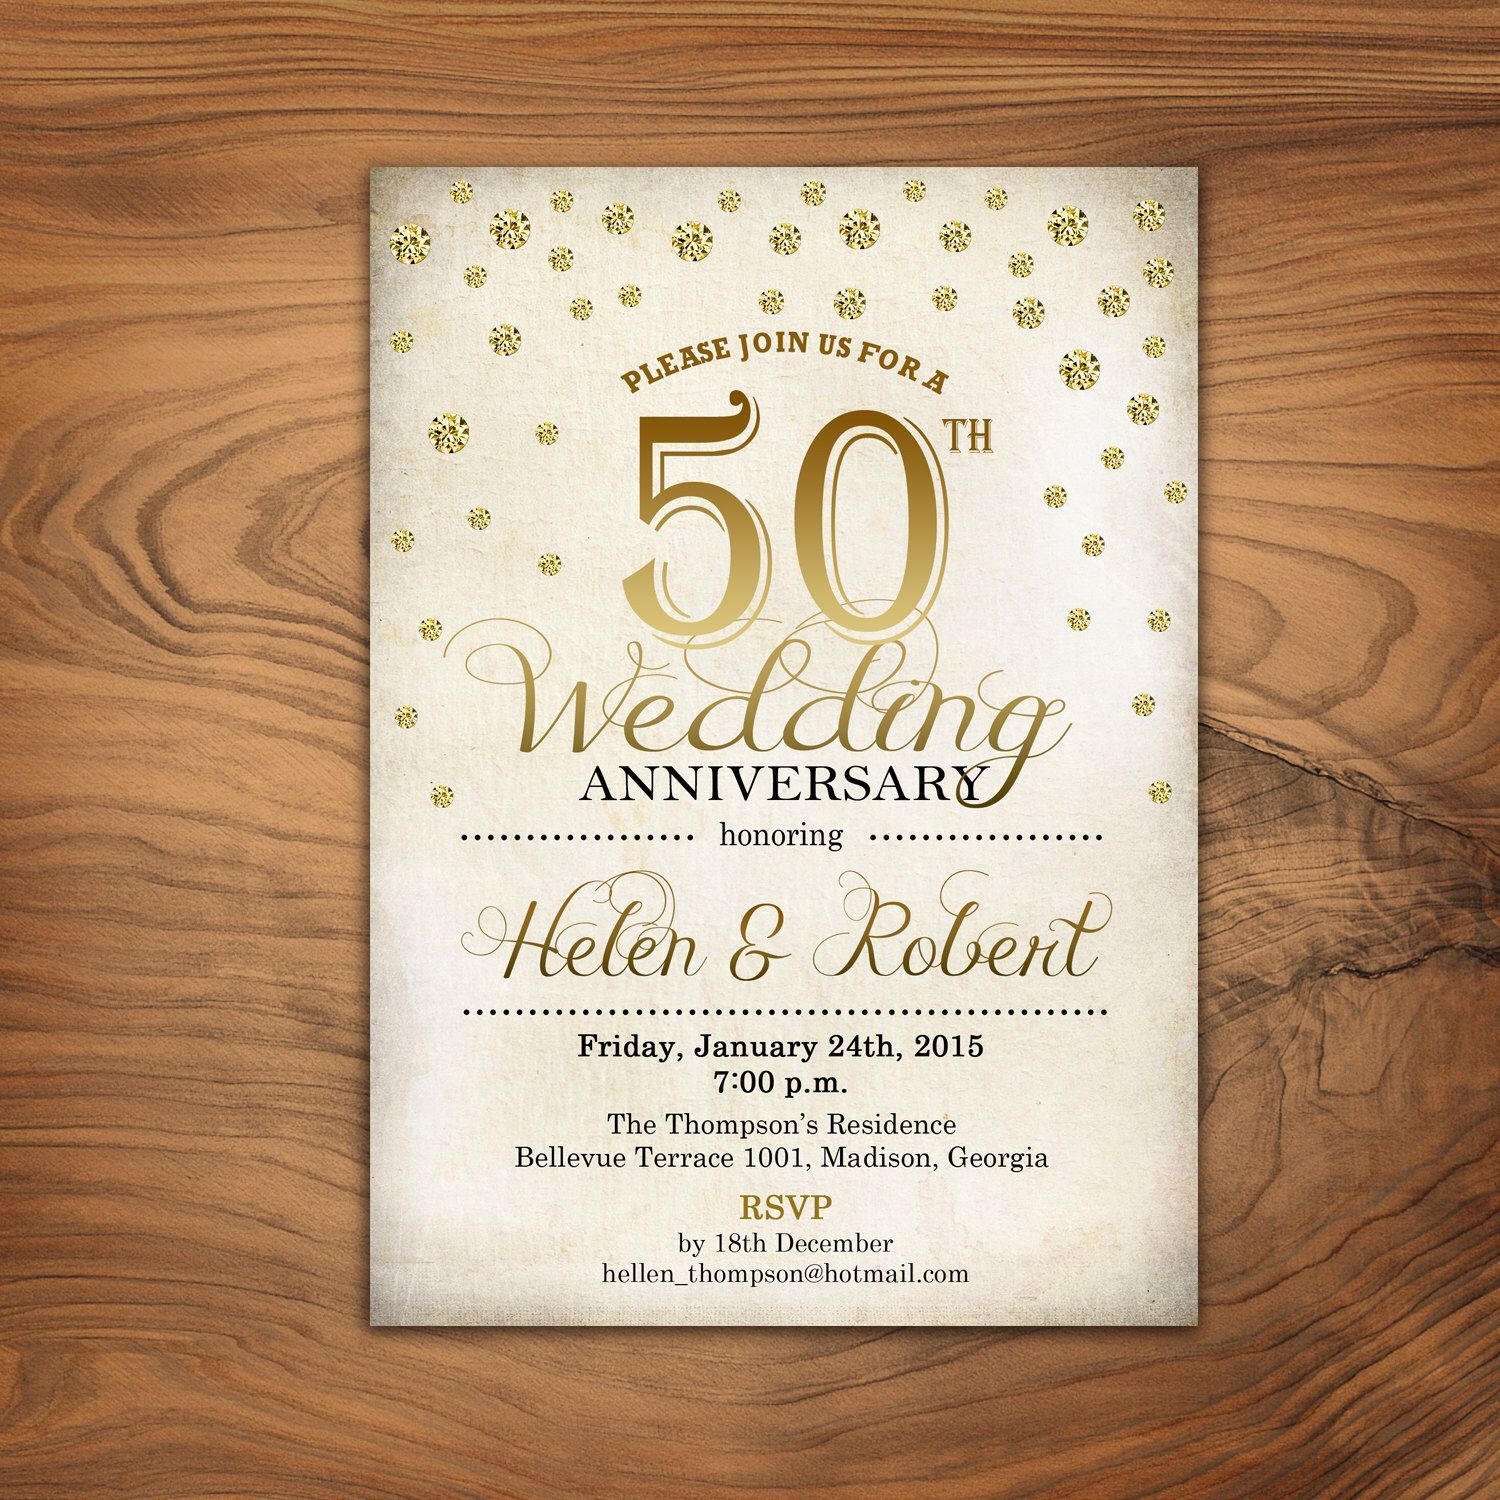 Th Wedding Anniversary Invitation  Gold  White  Retro